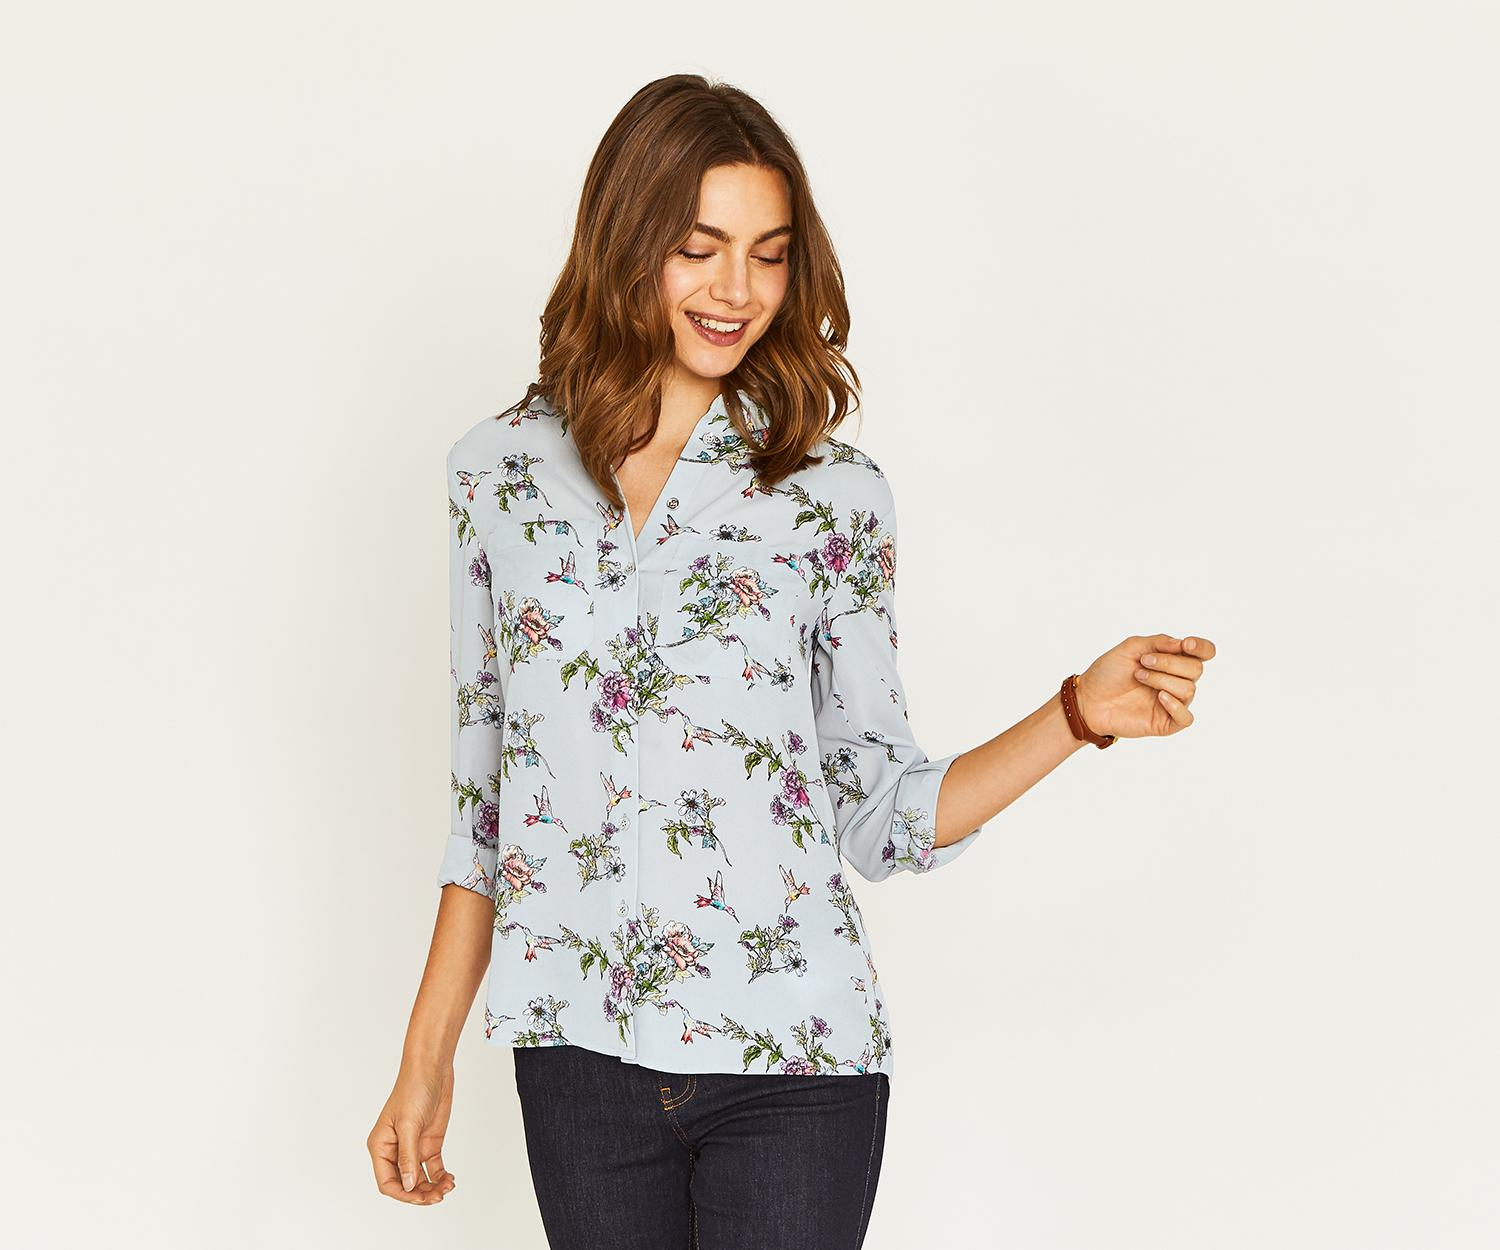 f02dc8f5ee343 Lyst - Oasis Zaina Floral Shirt in Gray